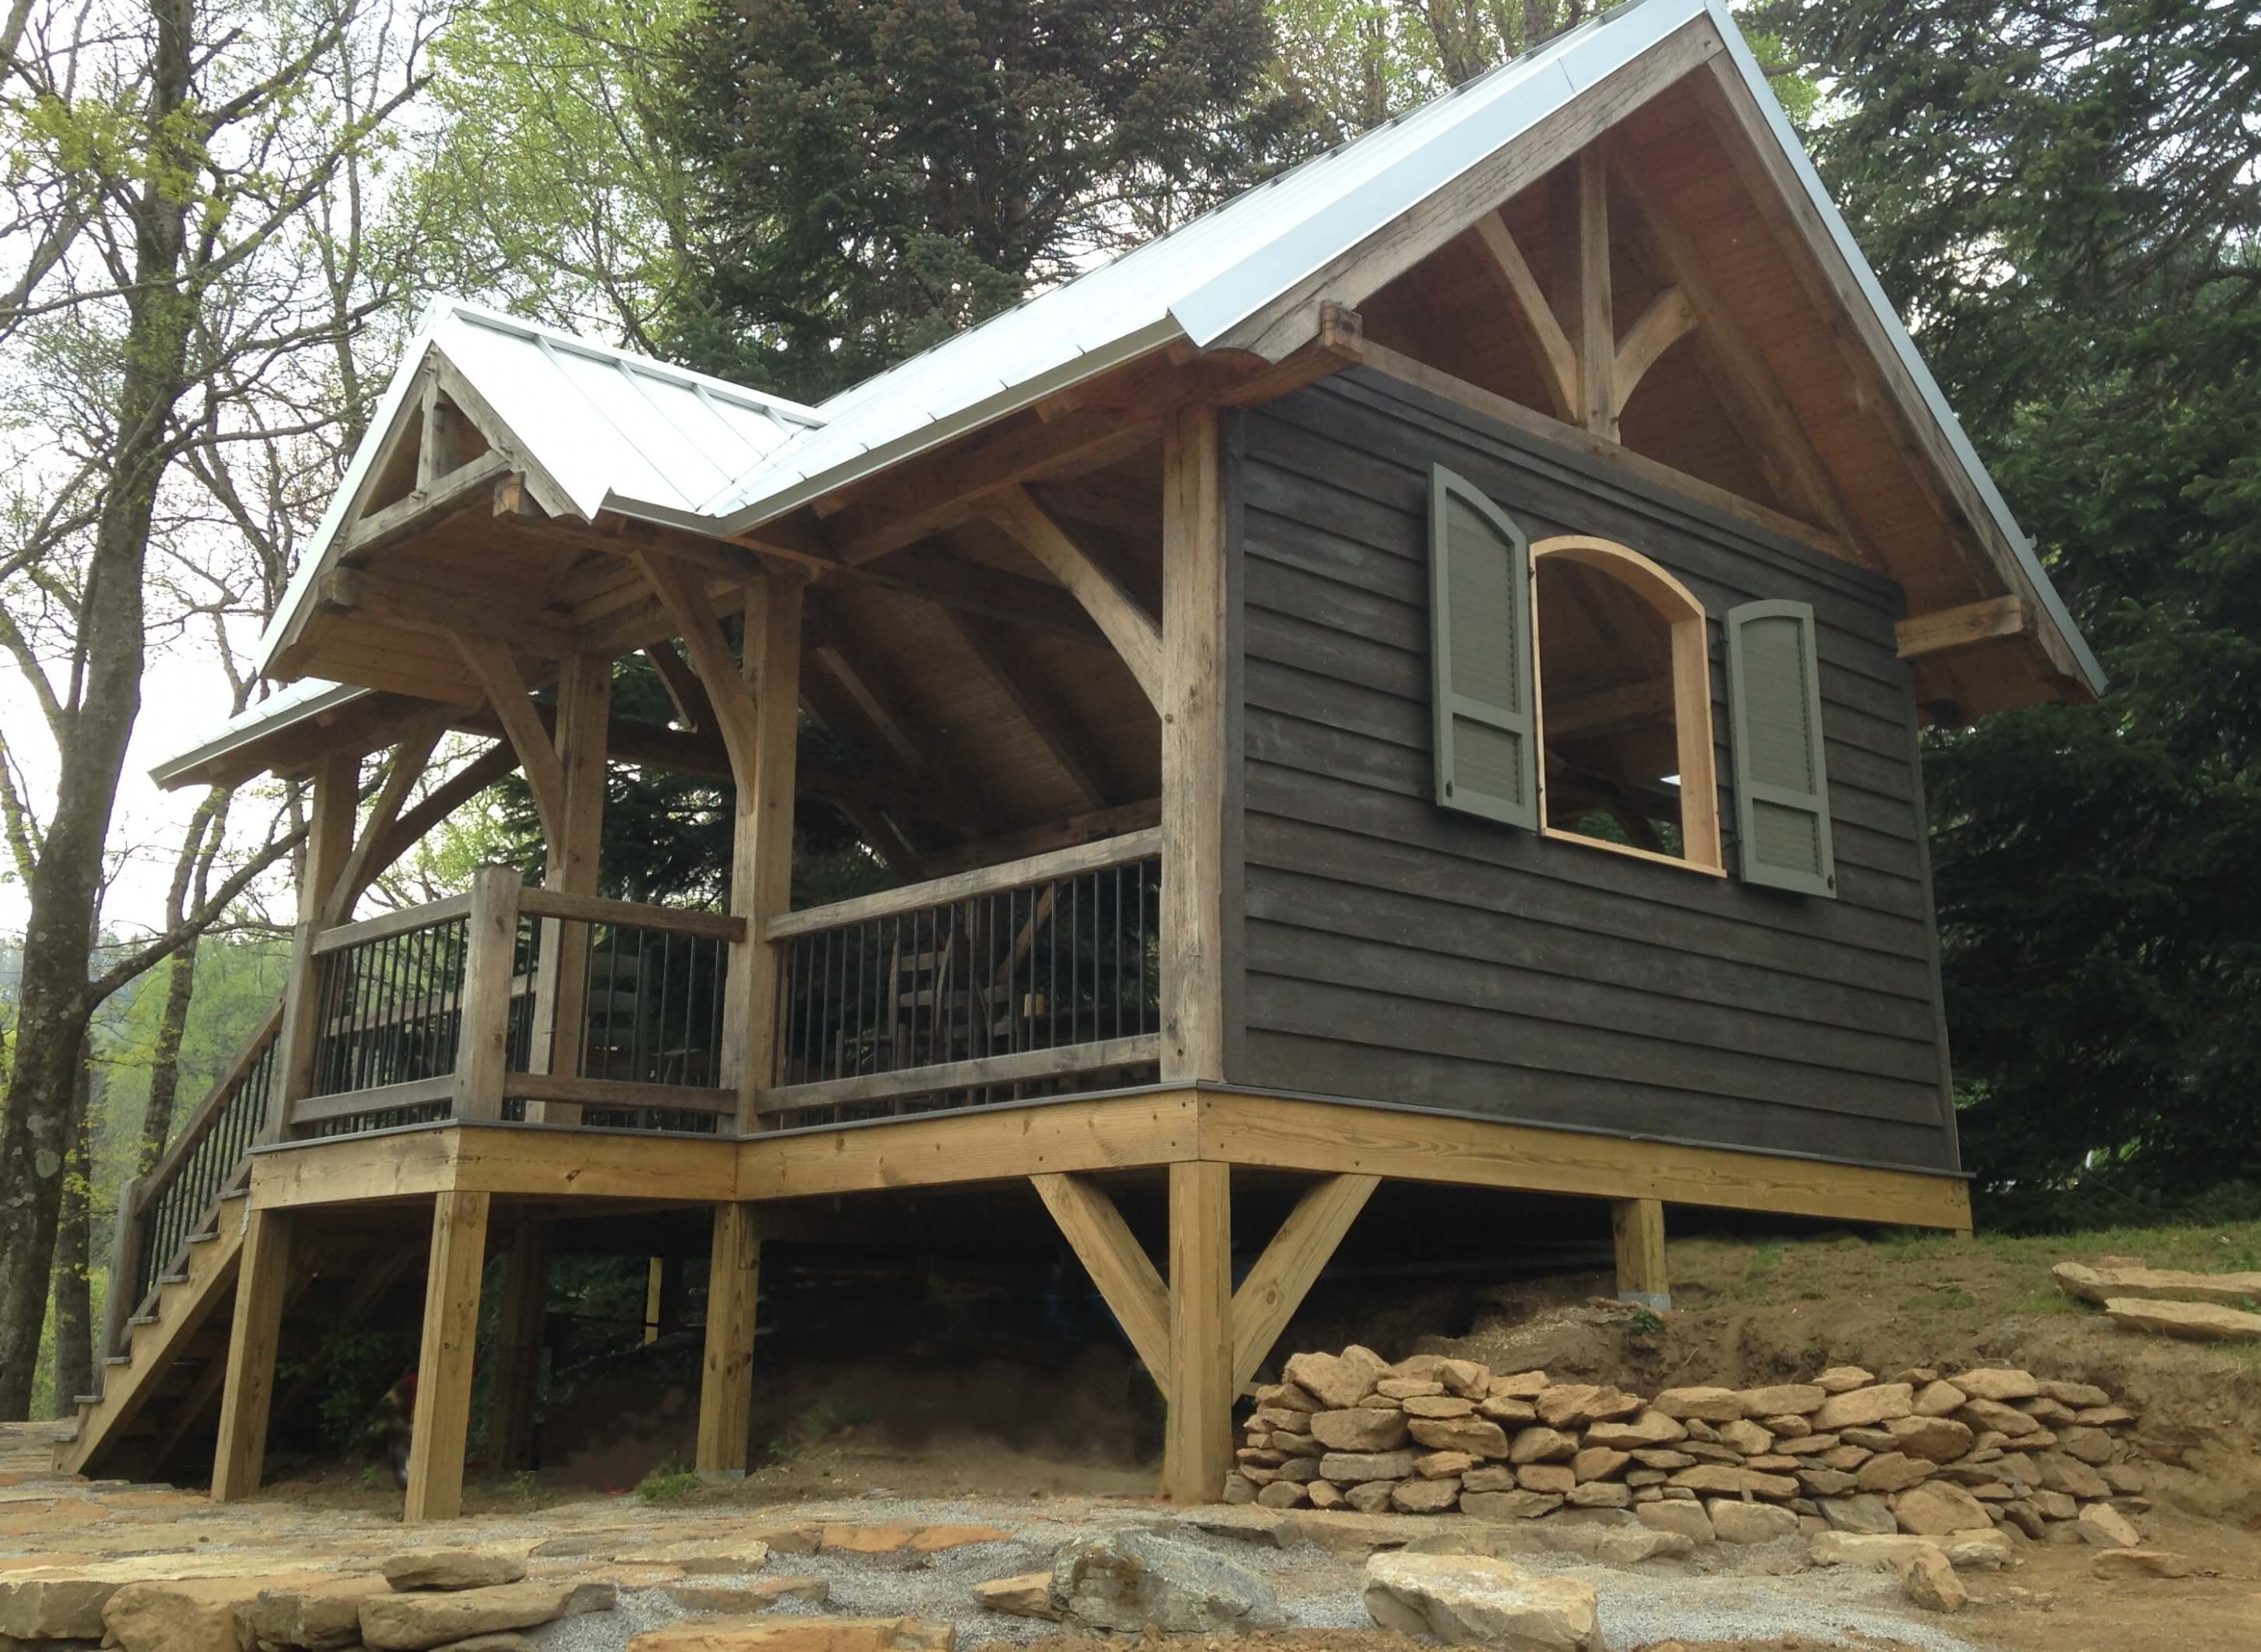 Timber Frame Outbuildings Carports, Outdoor Kitchens & More Free Standing Wooden Carports